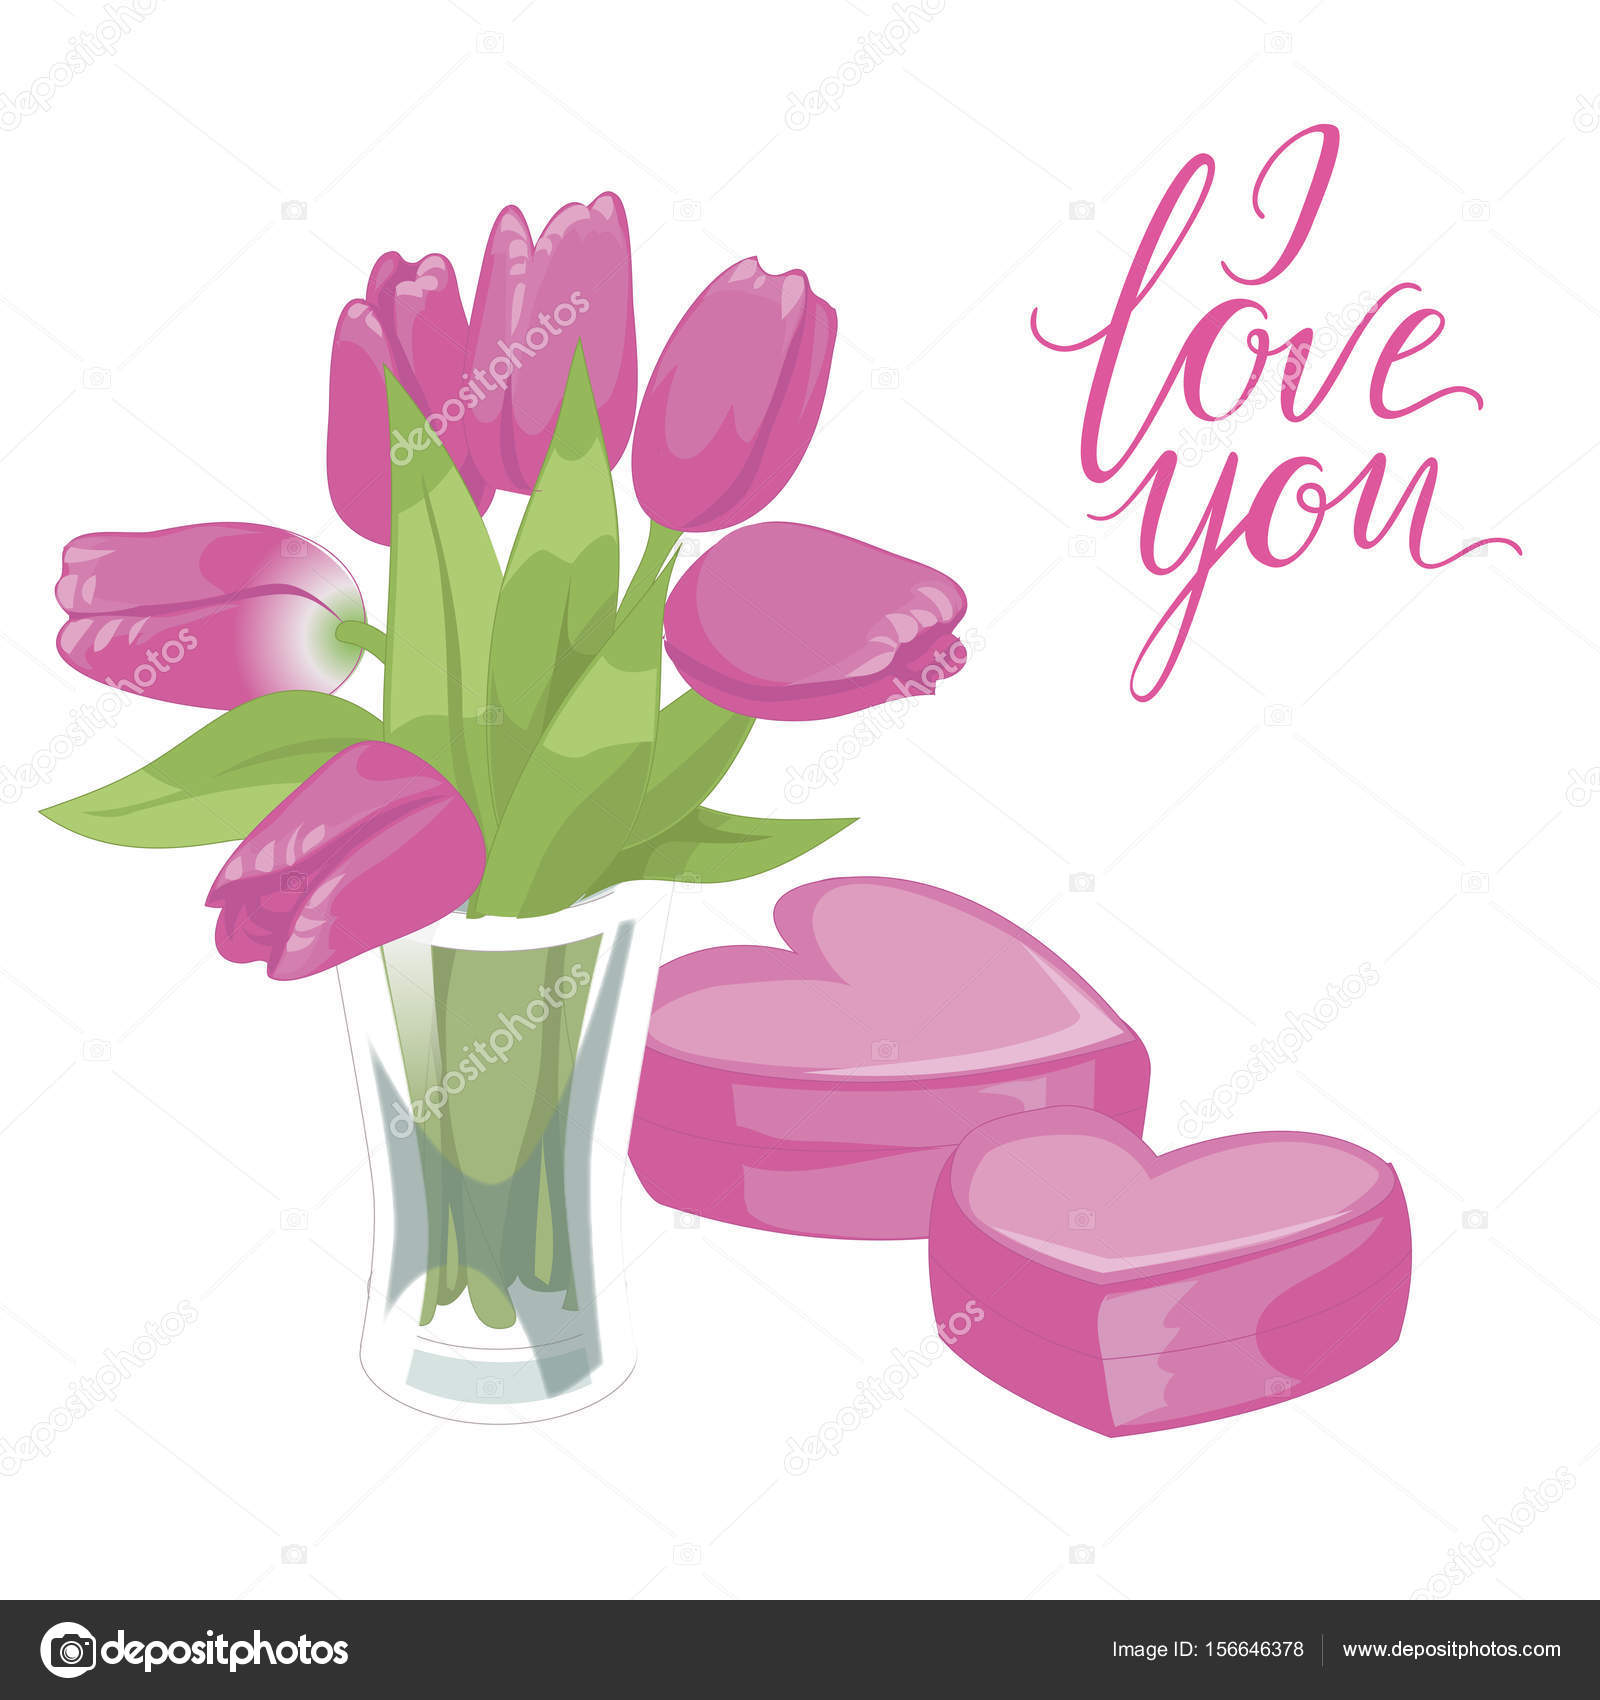 Flower Vase And Two Pink Hearts Flower Vase Isolated Icon On White